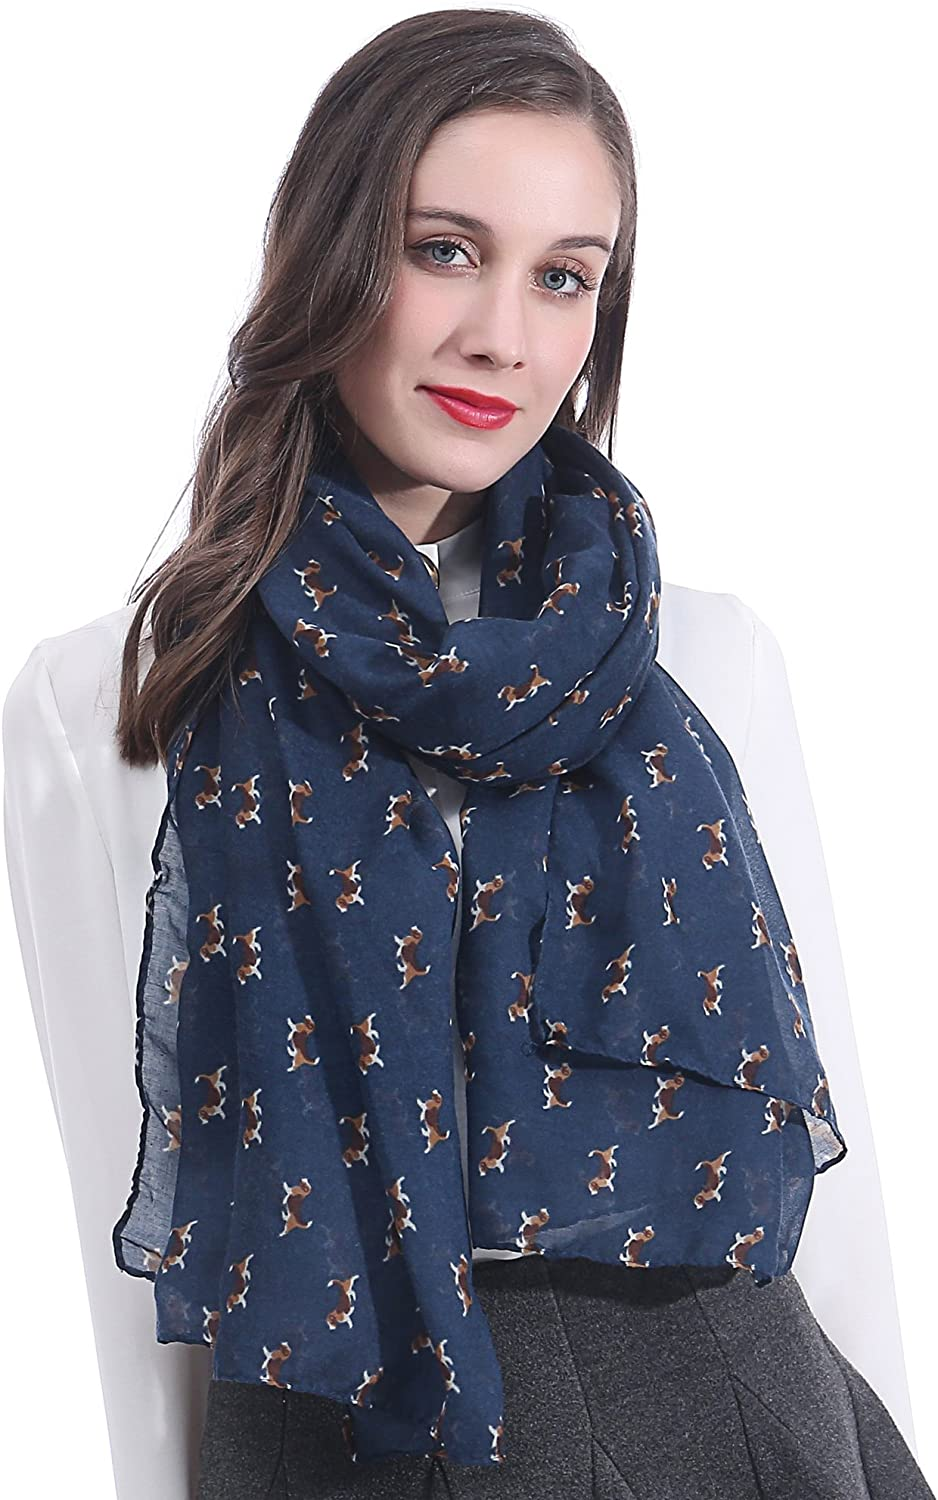 Lina & Lily Beagle Dog Print Women's Scarf Lightweight, Gift for Dog Lover